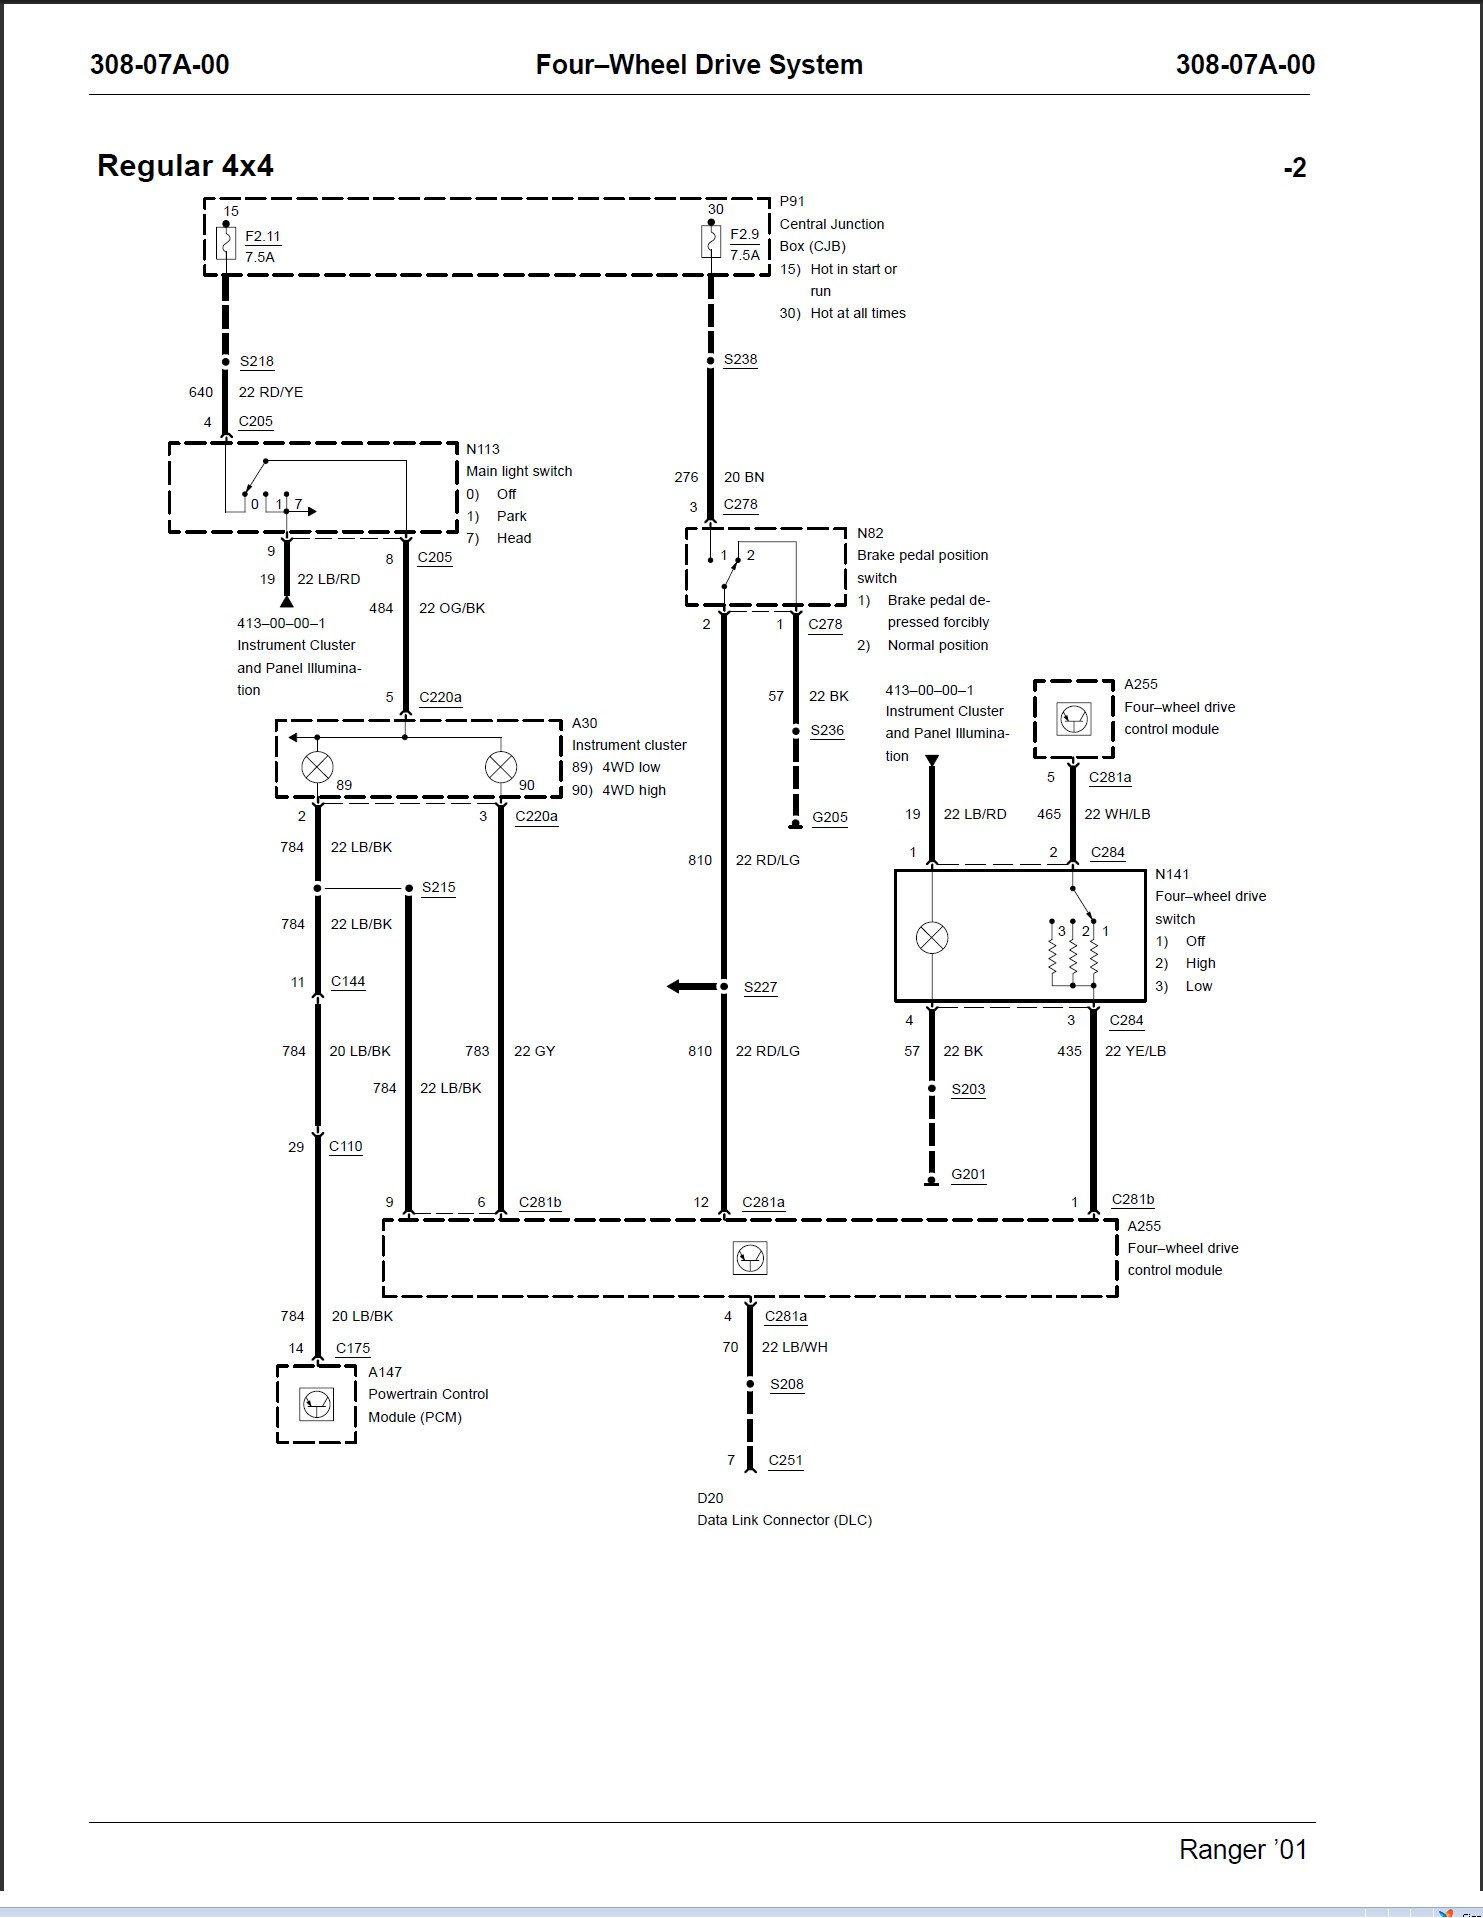 2000 ford F150 Ignition Switch Wiring Diagram ford Transfer Case Wiring Diagram Wiring Diagram Symbols Of 2000 ford F150 Ignition Switch Wiring Diagram Diagram] Motorcycle Wiring Diagram Explained Full Version Hd